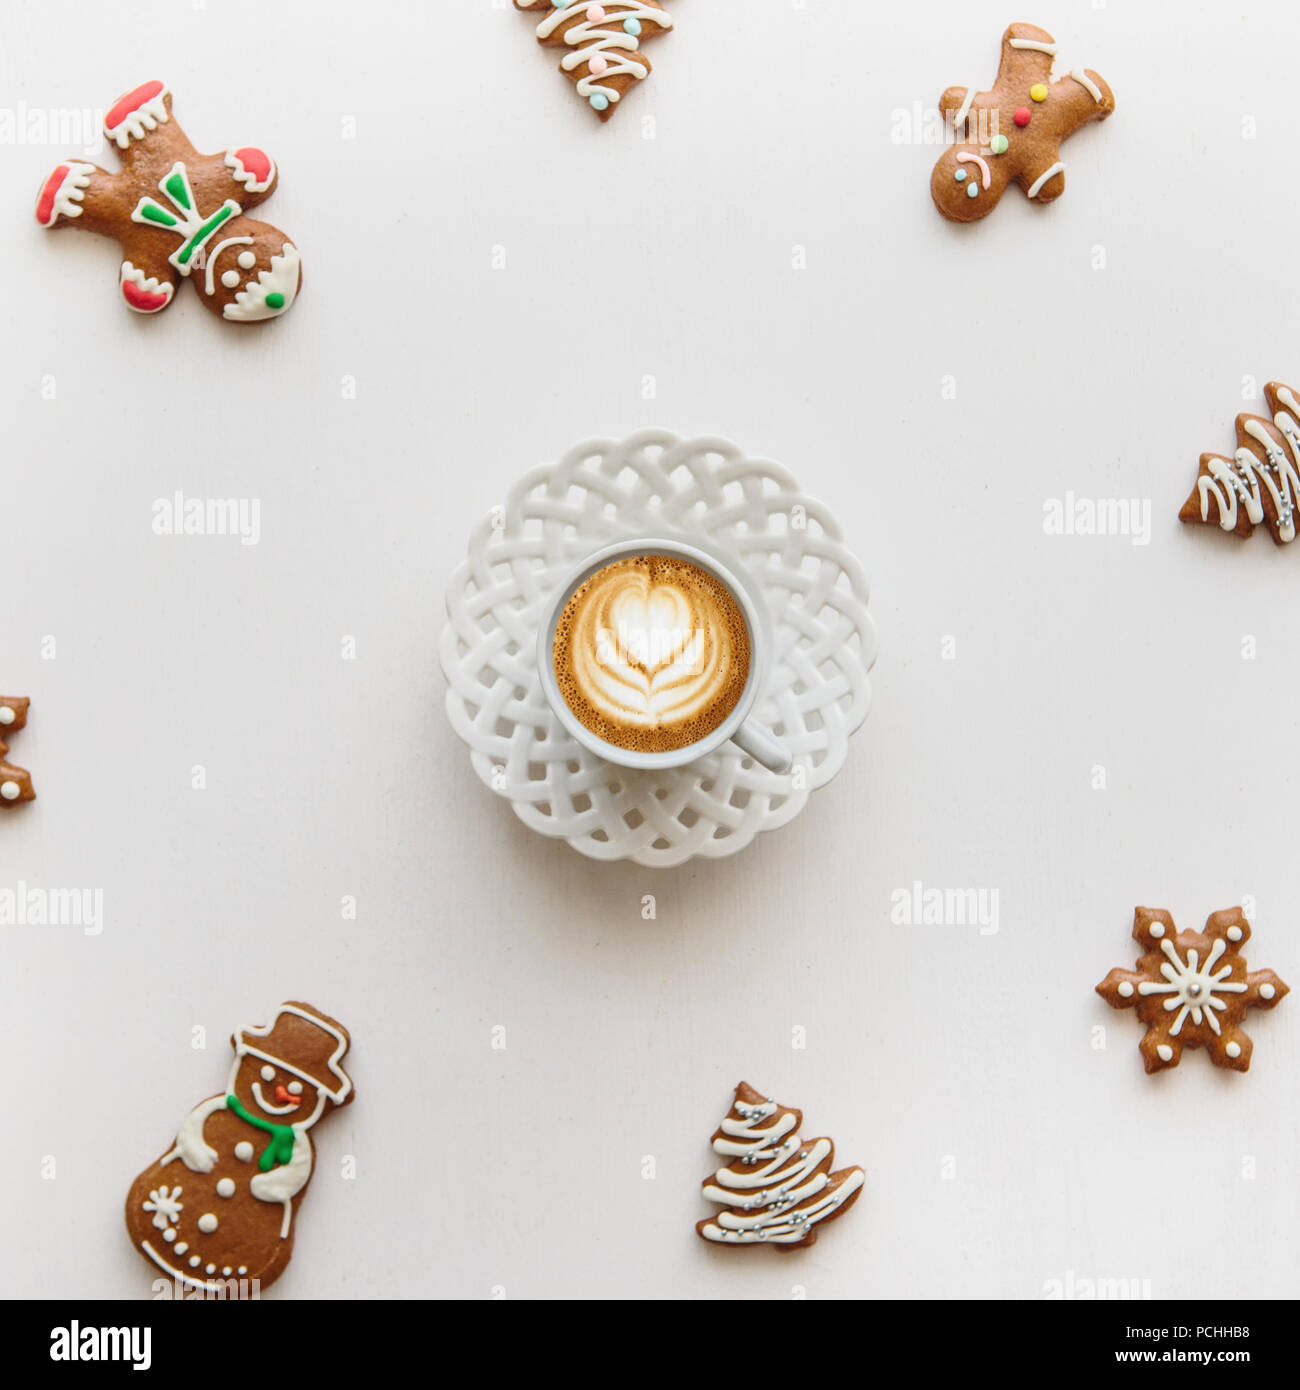 A cup of freshly flavored cappuccino coffee. Near the scenery in the Christmas or New Year's style. Christmas concept. - Stock Image